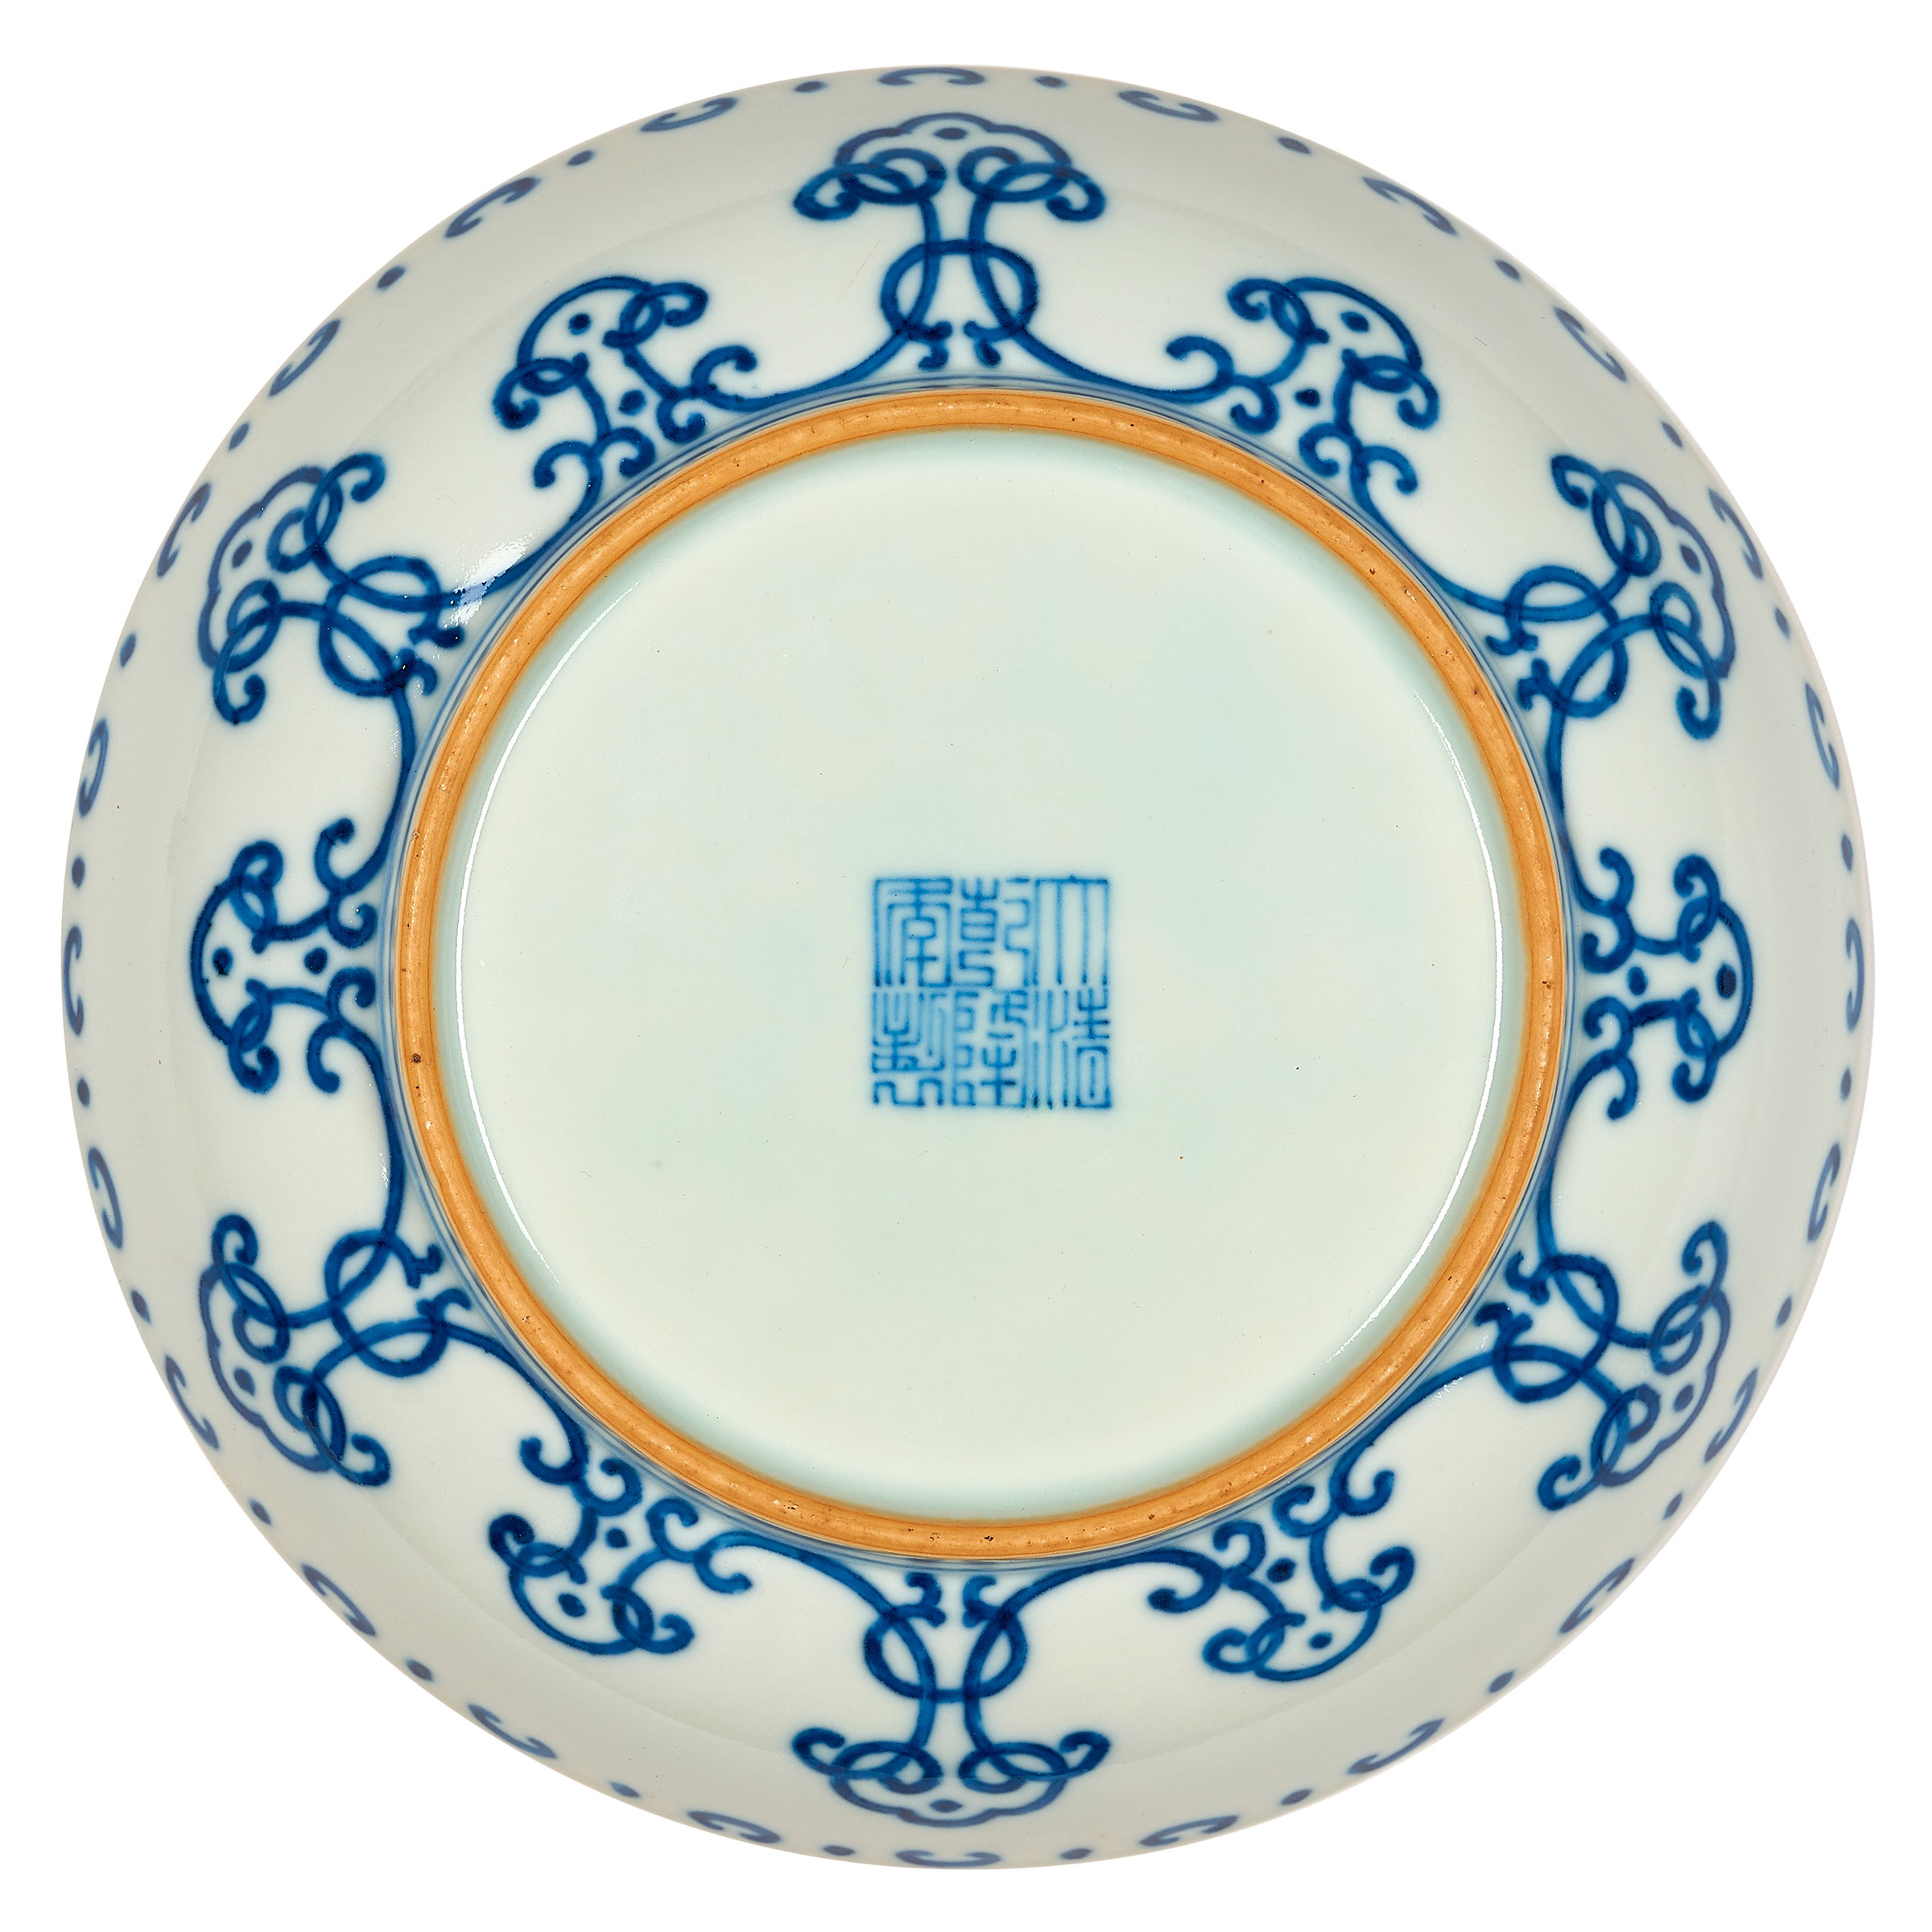 white and blue porcelain pot Chinese stamp